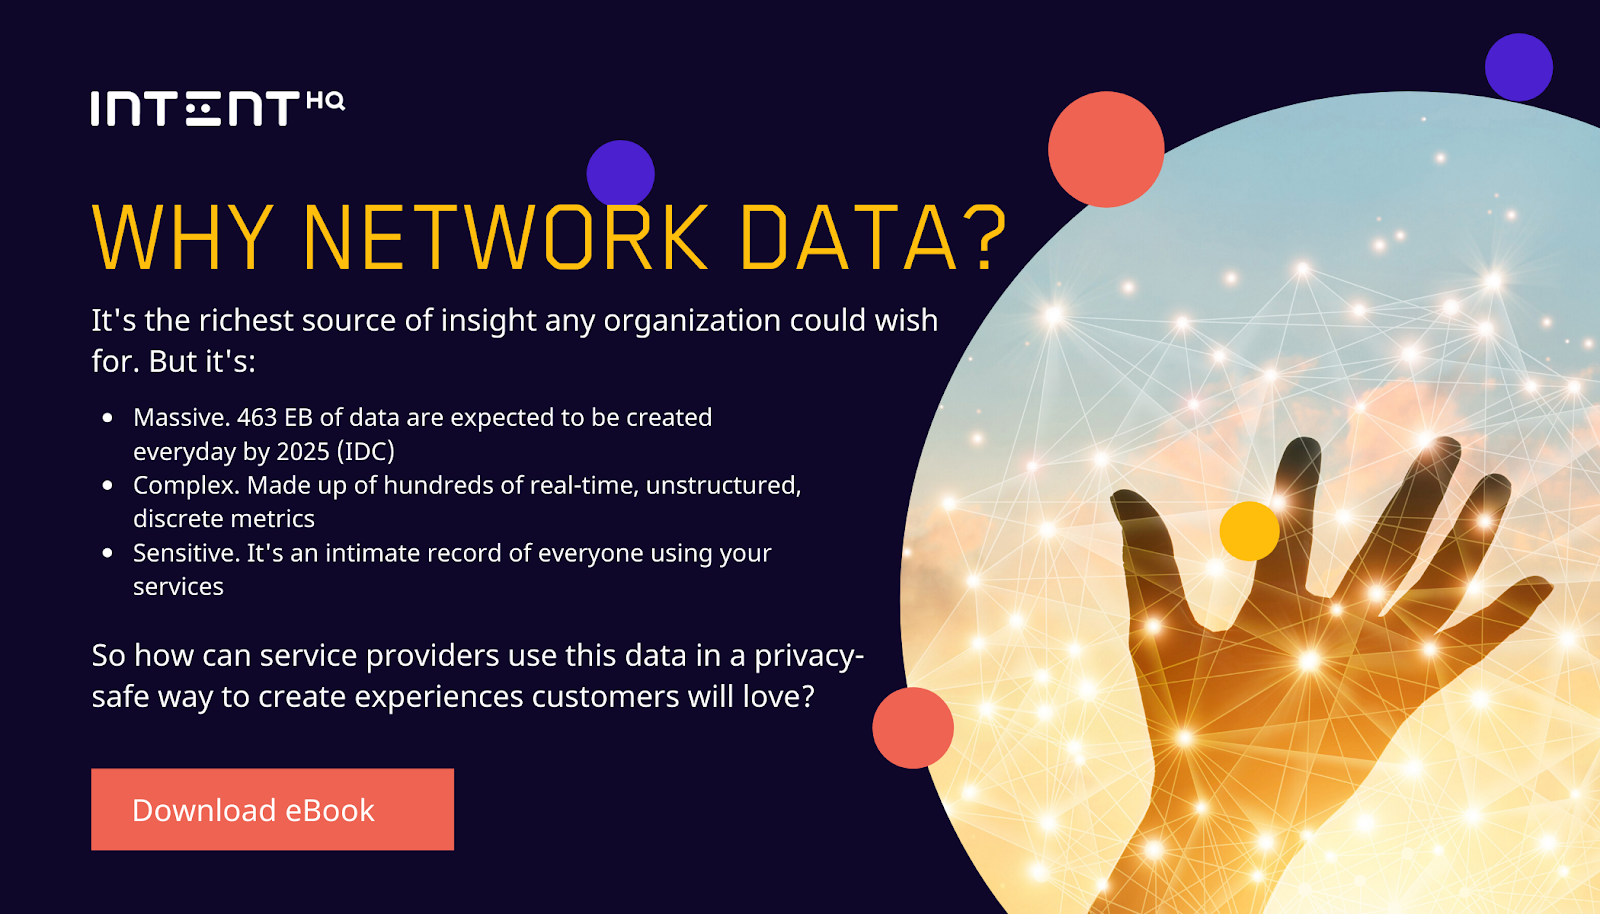 Why network data to create better experiences